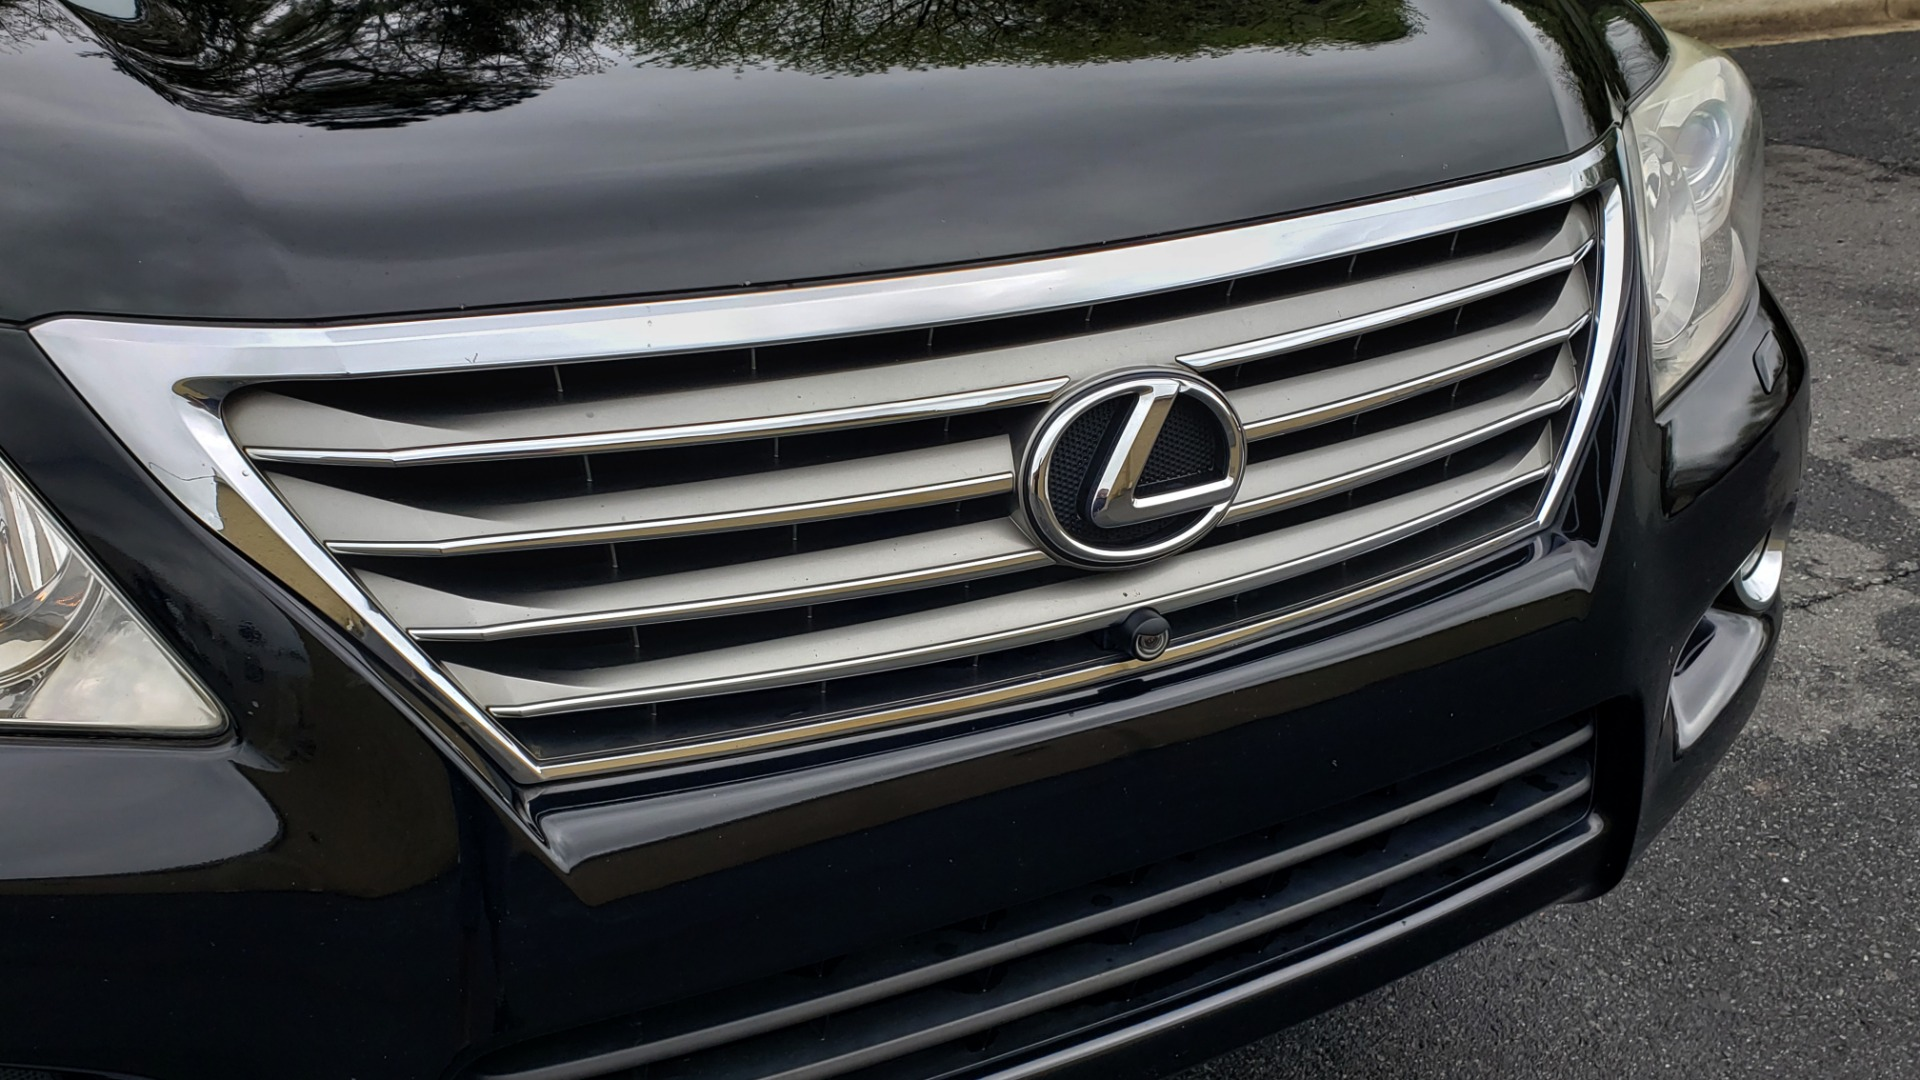 Used 2008 Lexus LX 570 4WD / TECH PKG / NAV / SUNROOF / MARK LEVINSON / PARK ASST for sale $22,995 at Formula Imports in Charlotte NC 28227 23